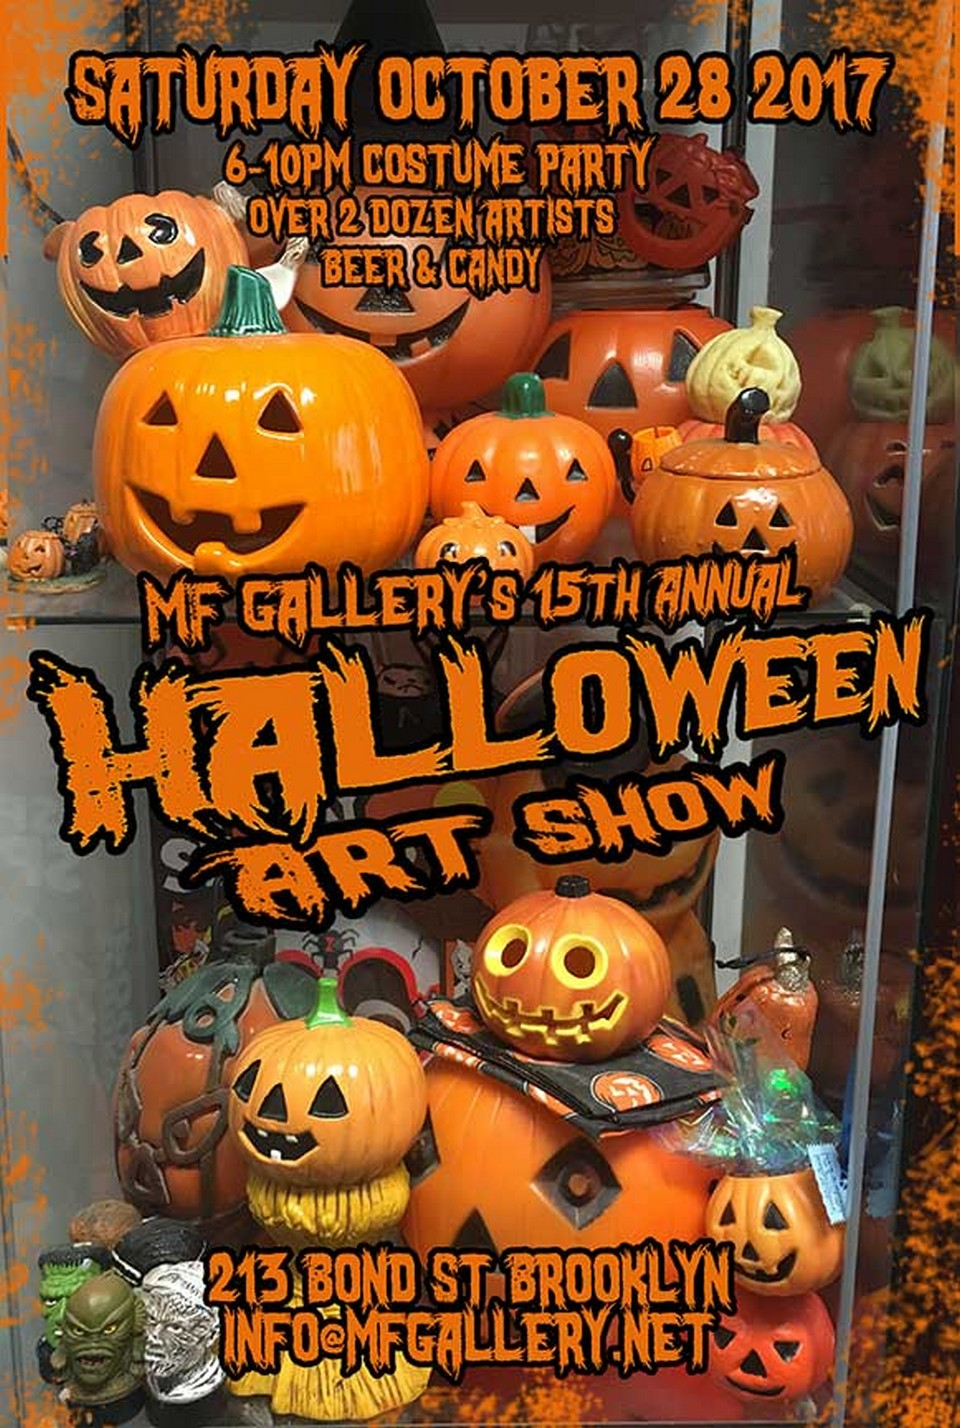 I participate to the annual Halloween show at MF Gallery with some prints and handmade jewelry. www.mfgallery.net